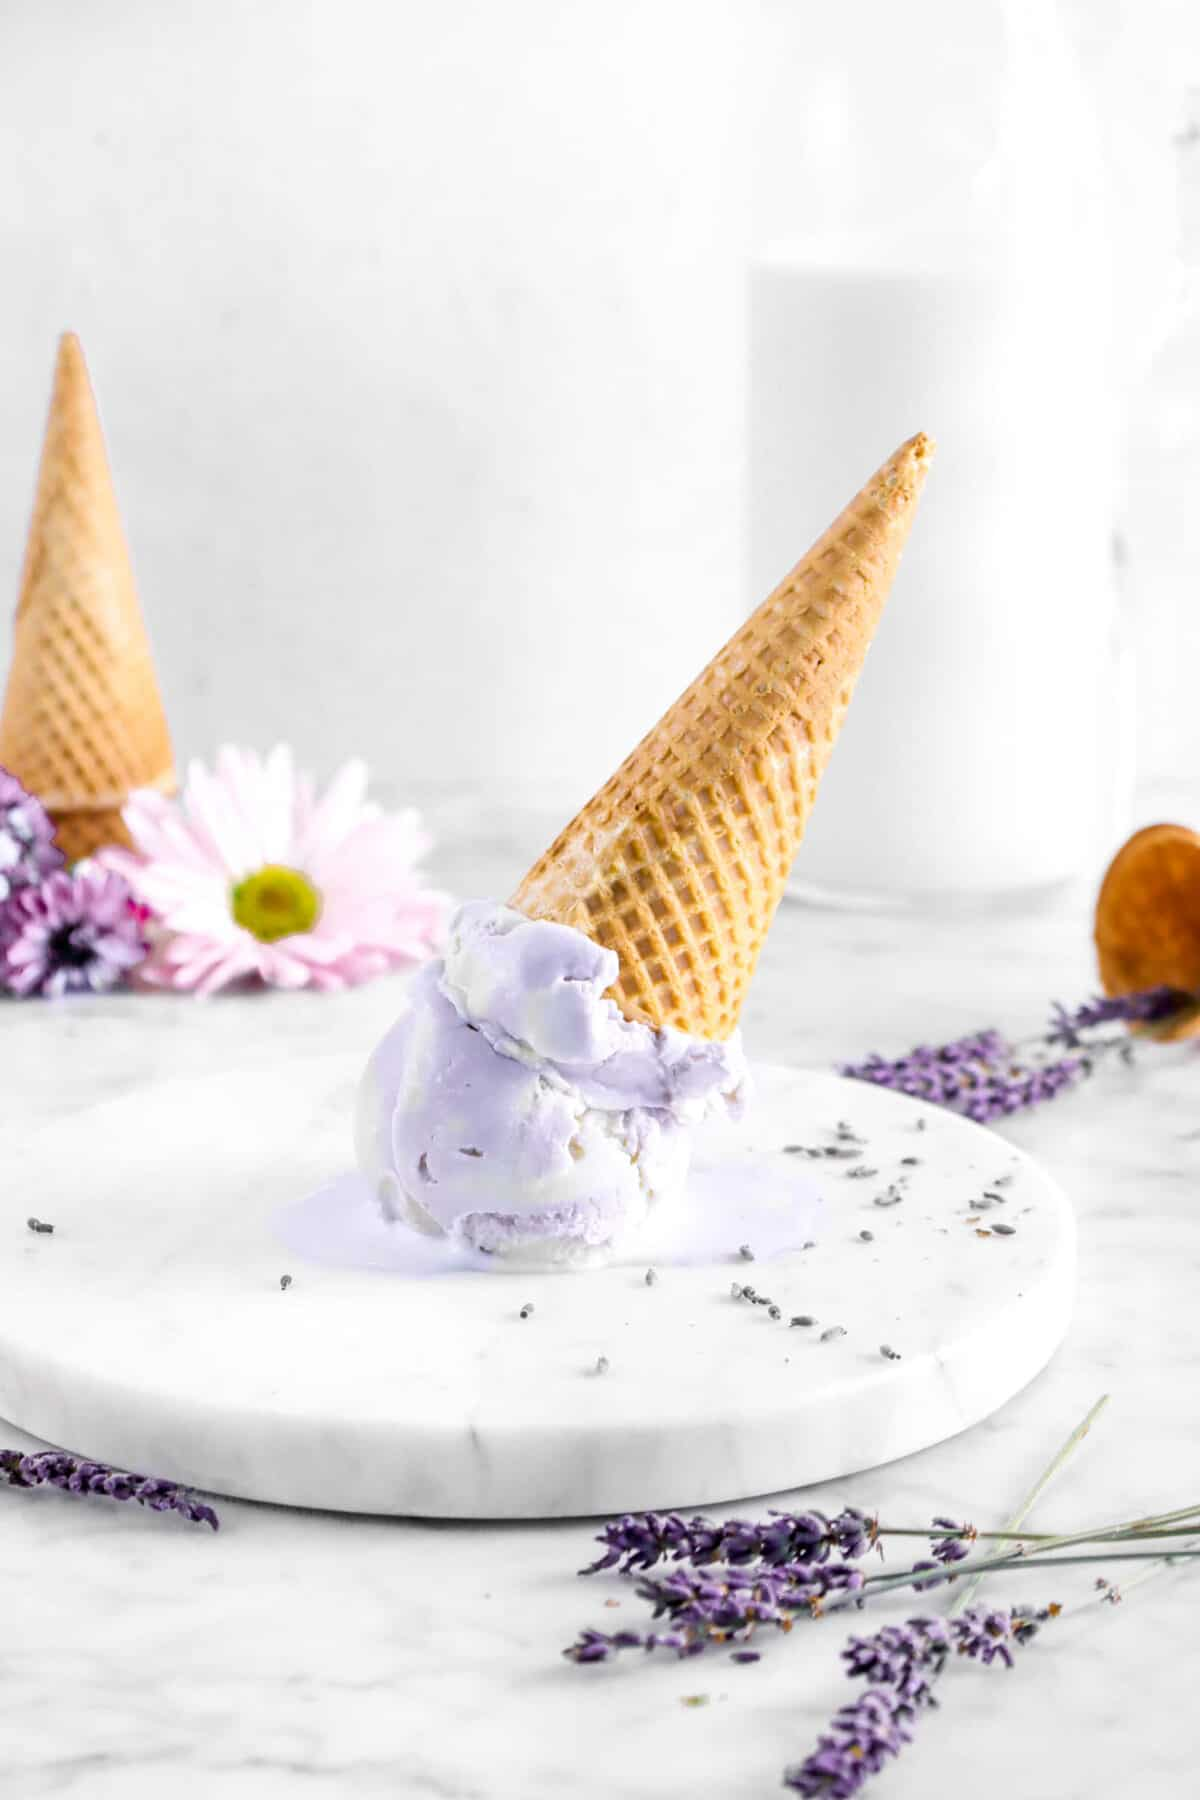 two scoops of lavender ice cream upside down on marble plate with dried lavender, flowers, two cones, and glass of milk